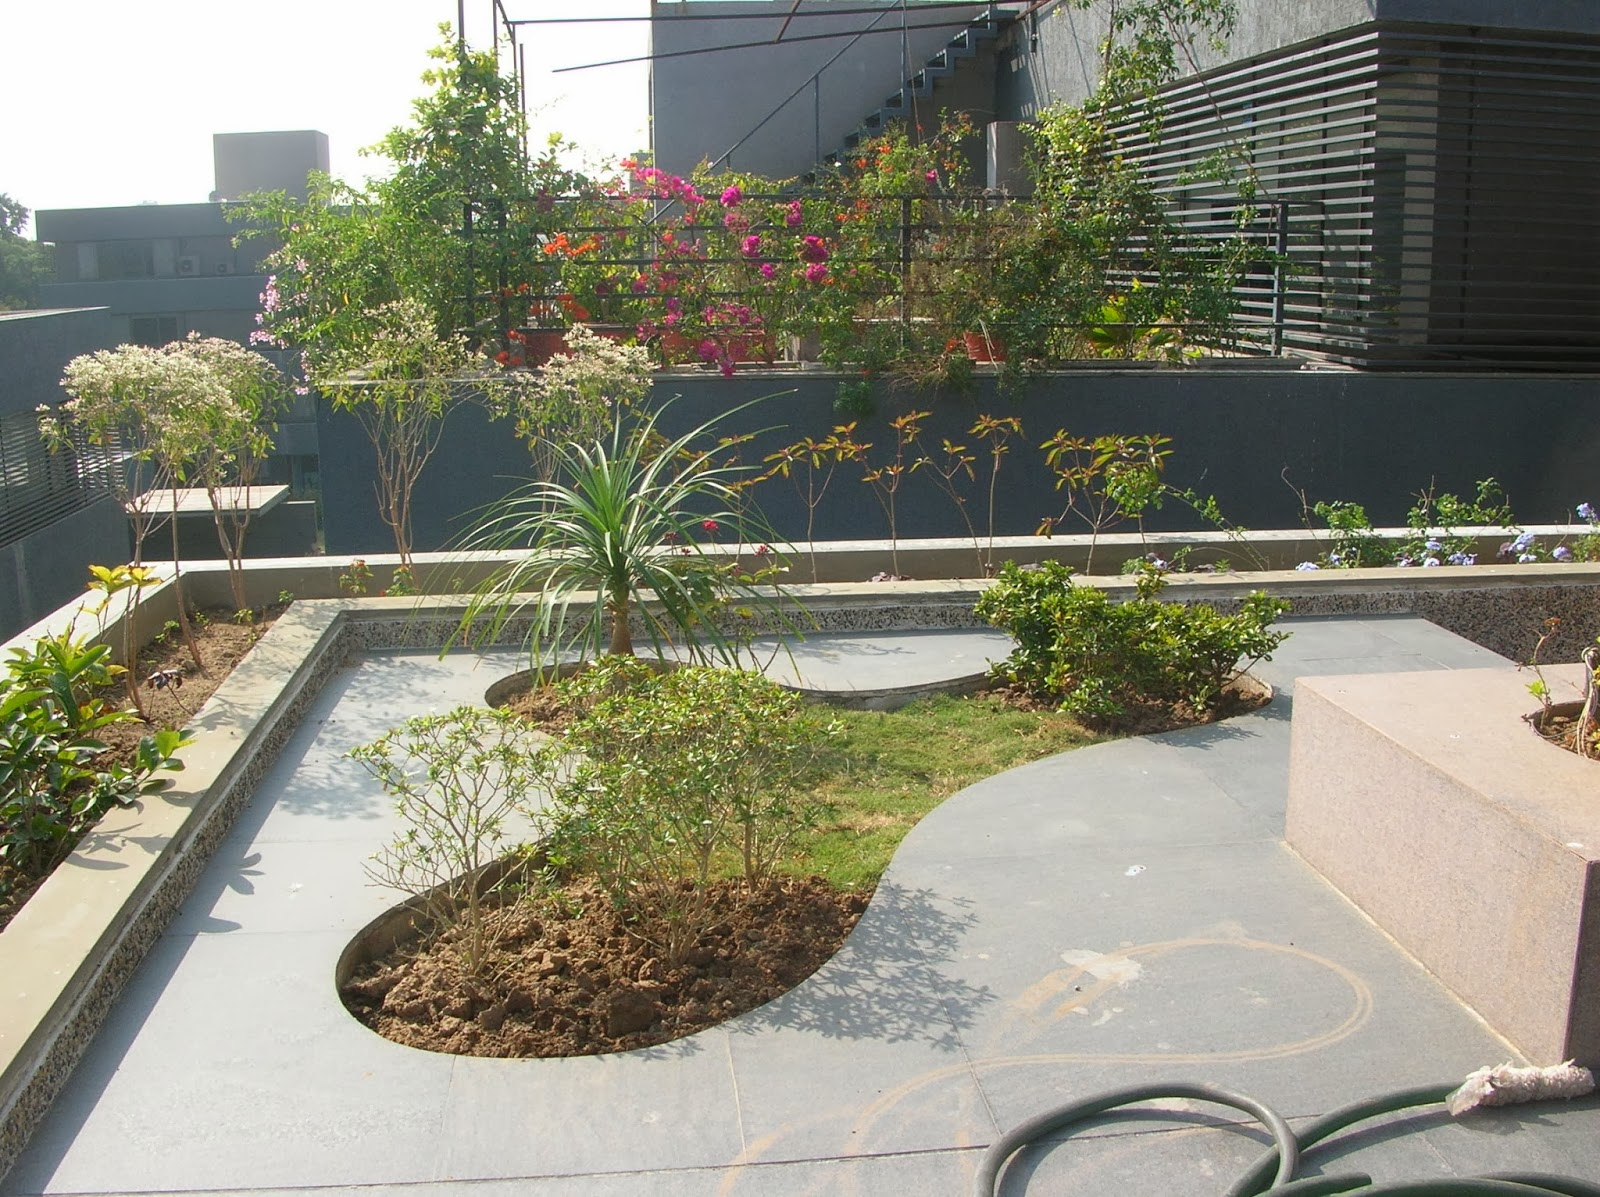 Bonsai trees and plants in ahmedabad for sale garden for Garden design georgian house